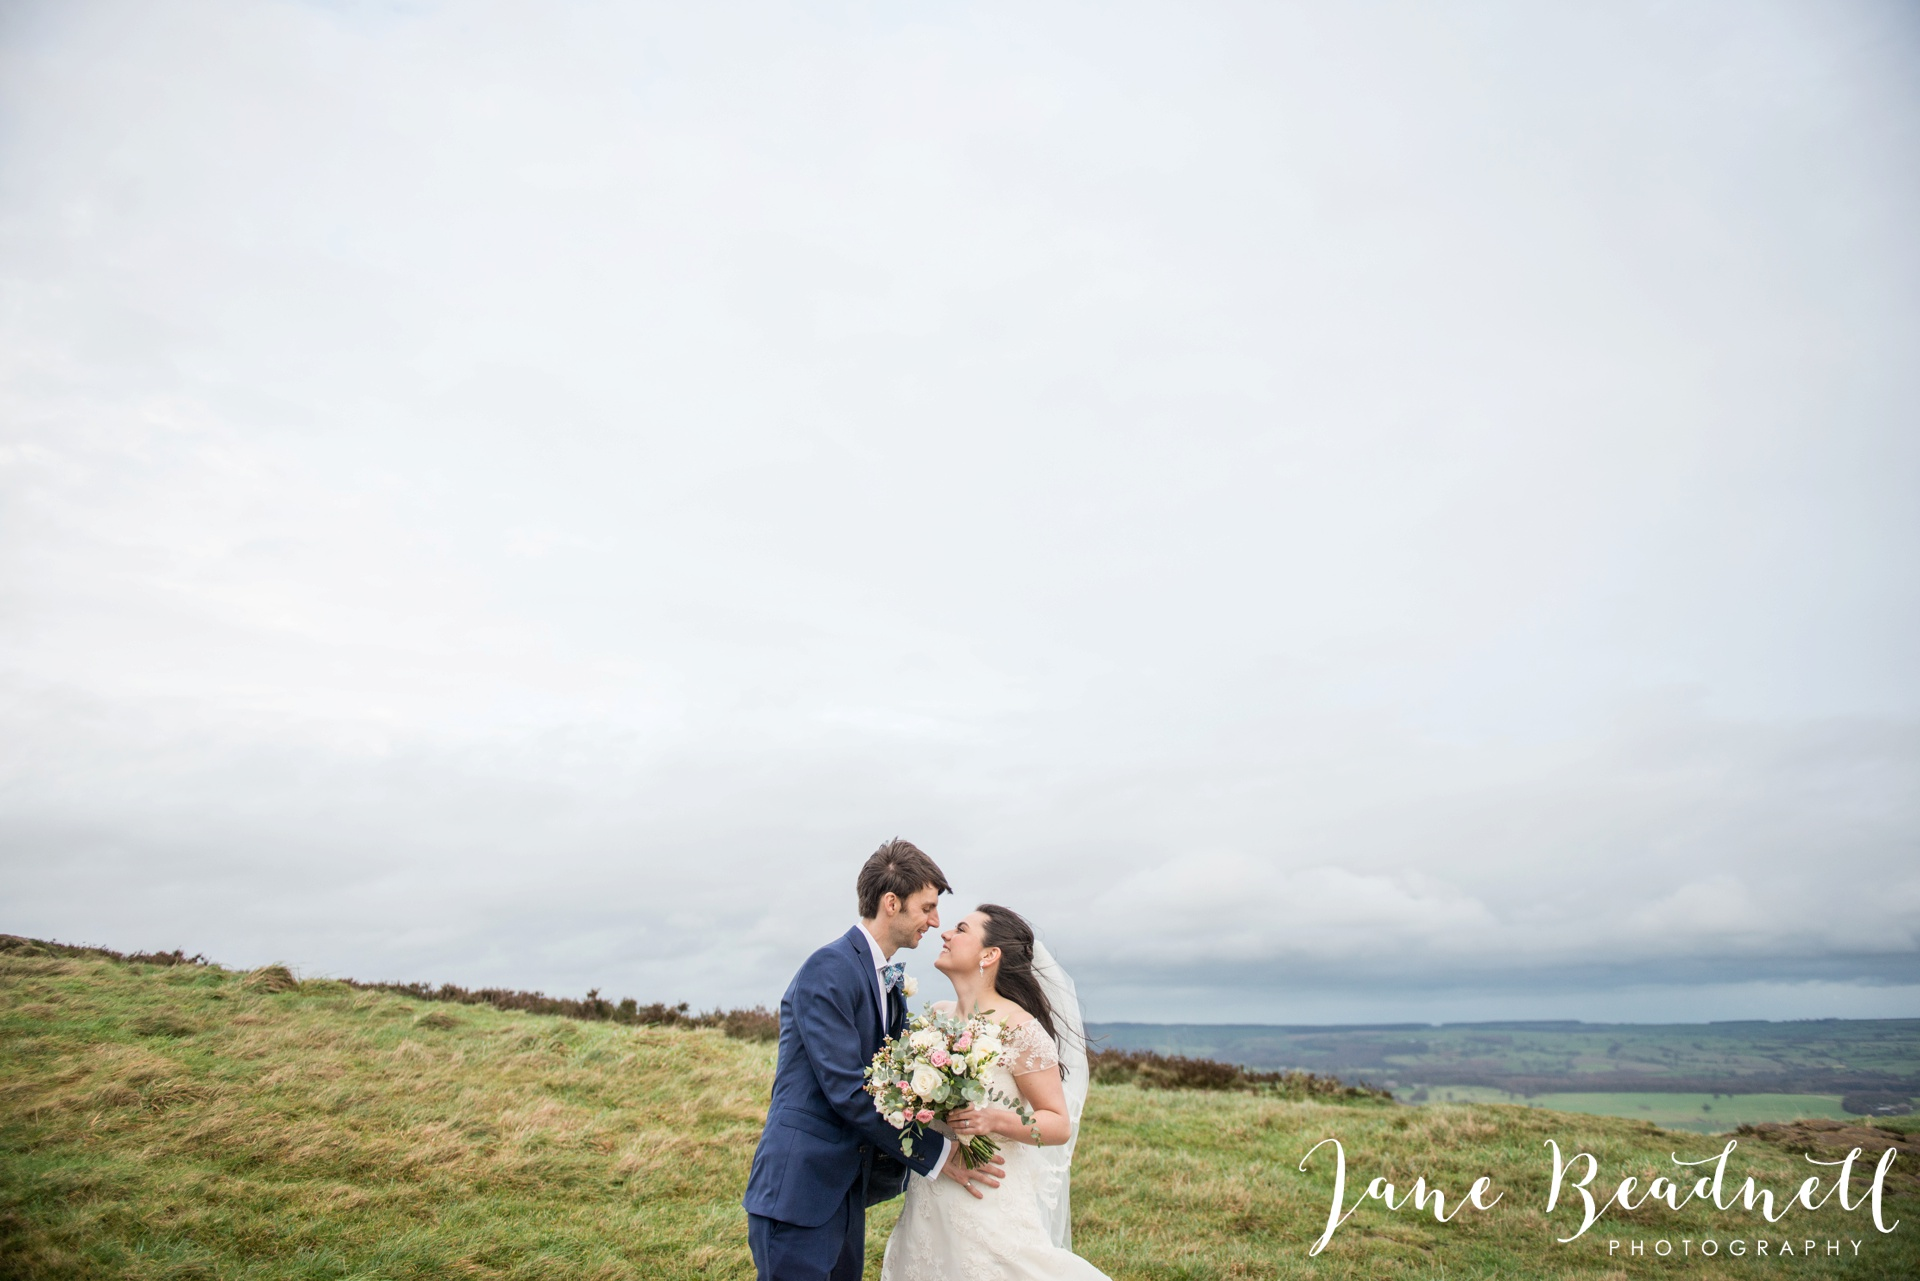 Otley Chevin Country Spa Hotel wedding Otley by Jane Beadnell Photography_0053